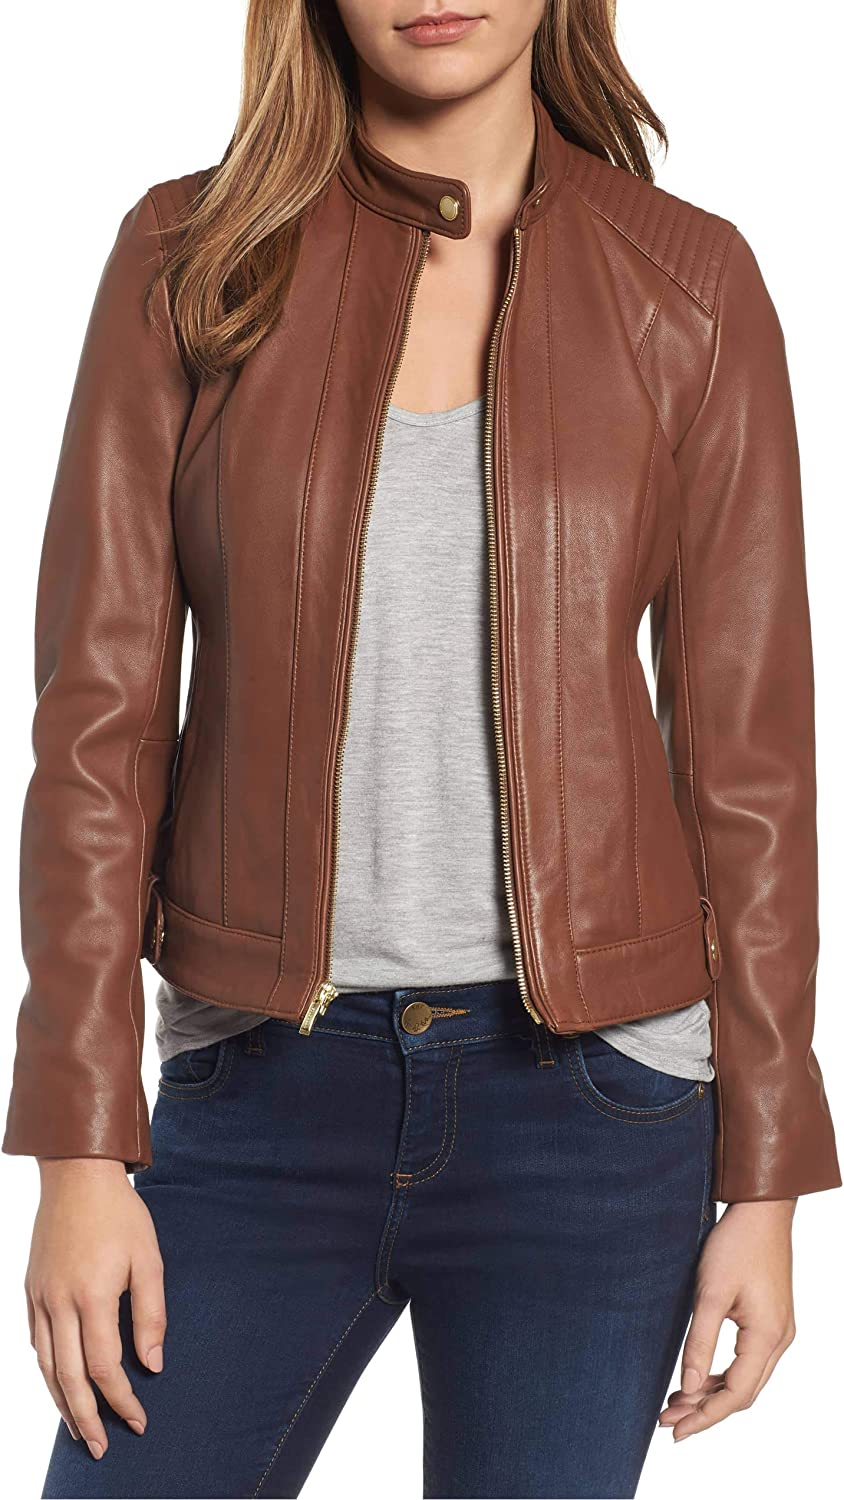 women-petite-jacket-butterscotch-leather